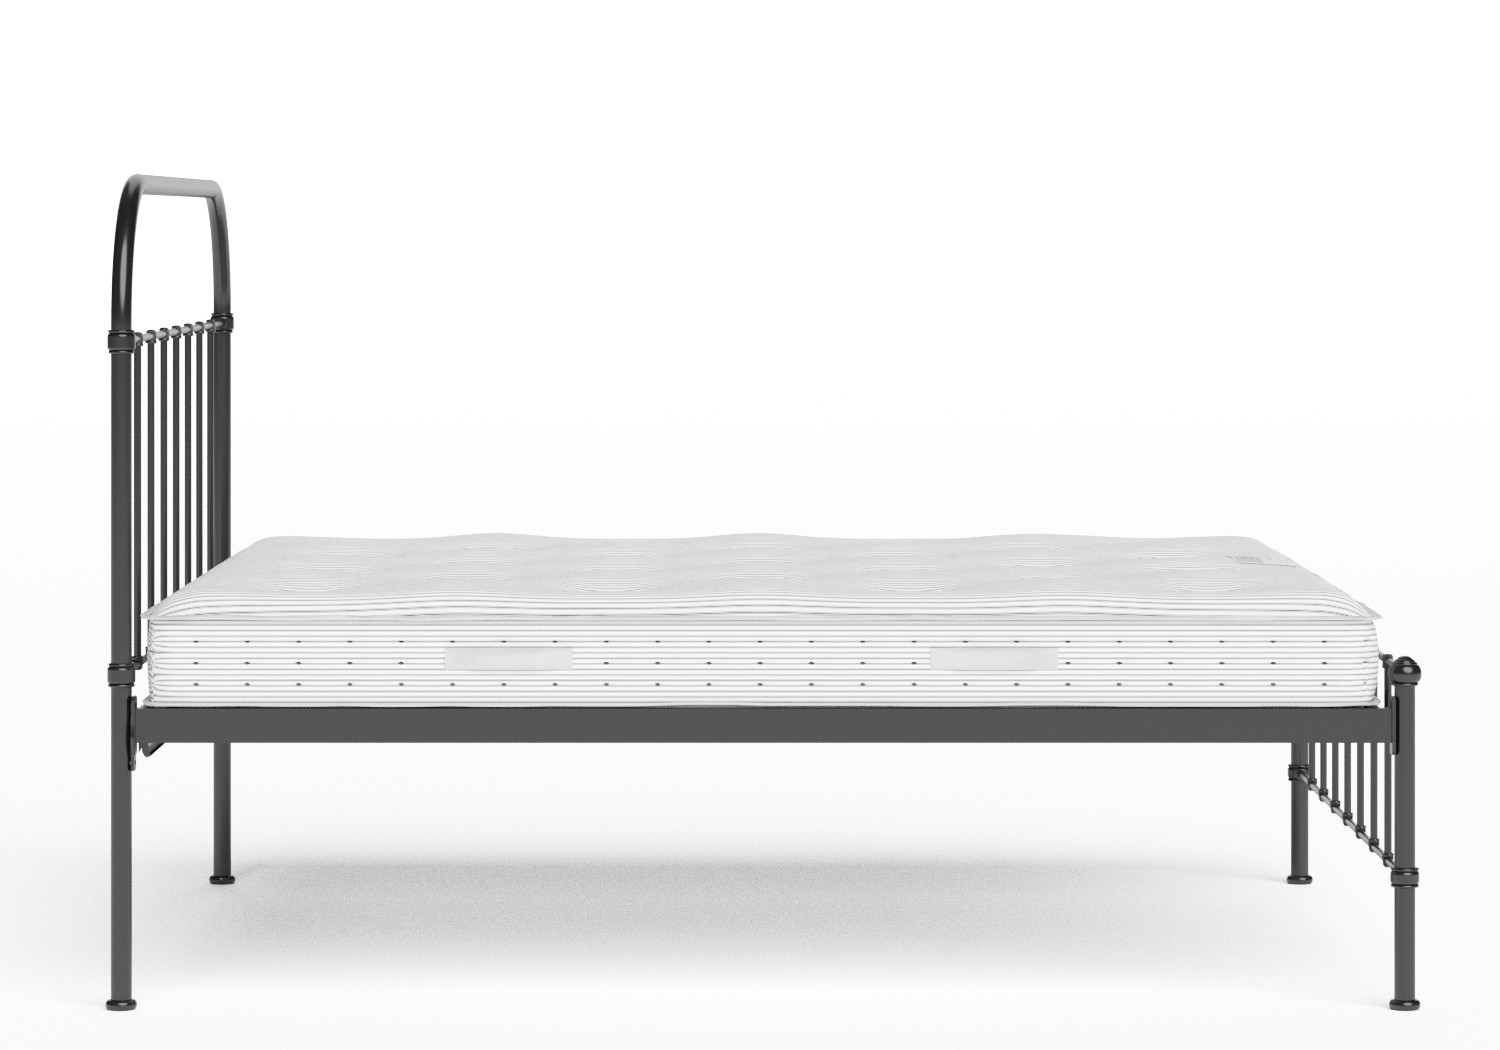 Solomon Iron/Metal Bed in Satin Black shown with Juno 1 mattress